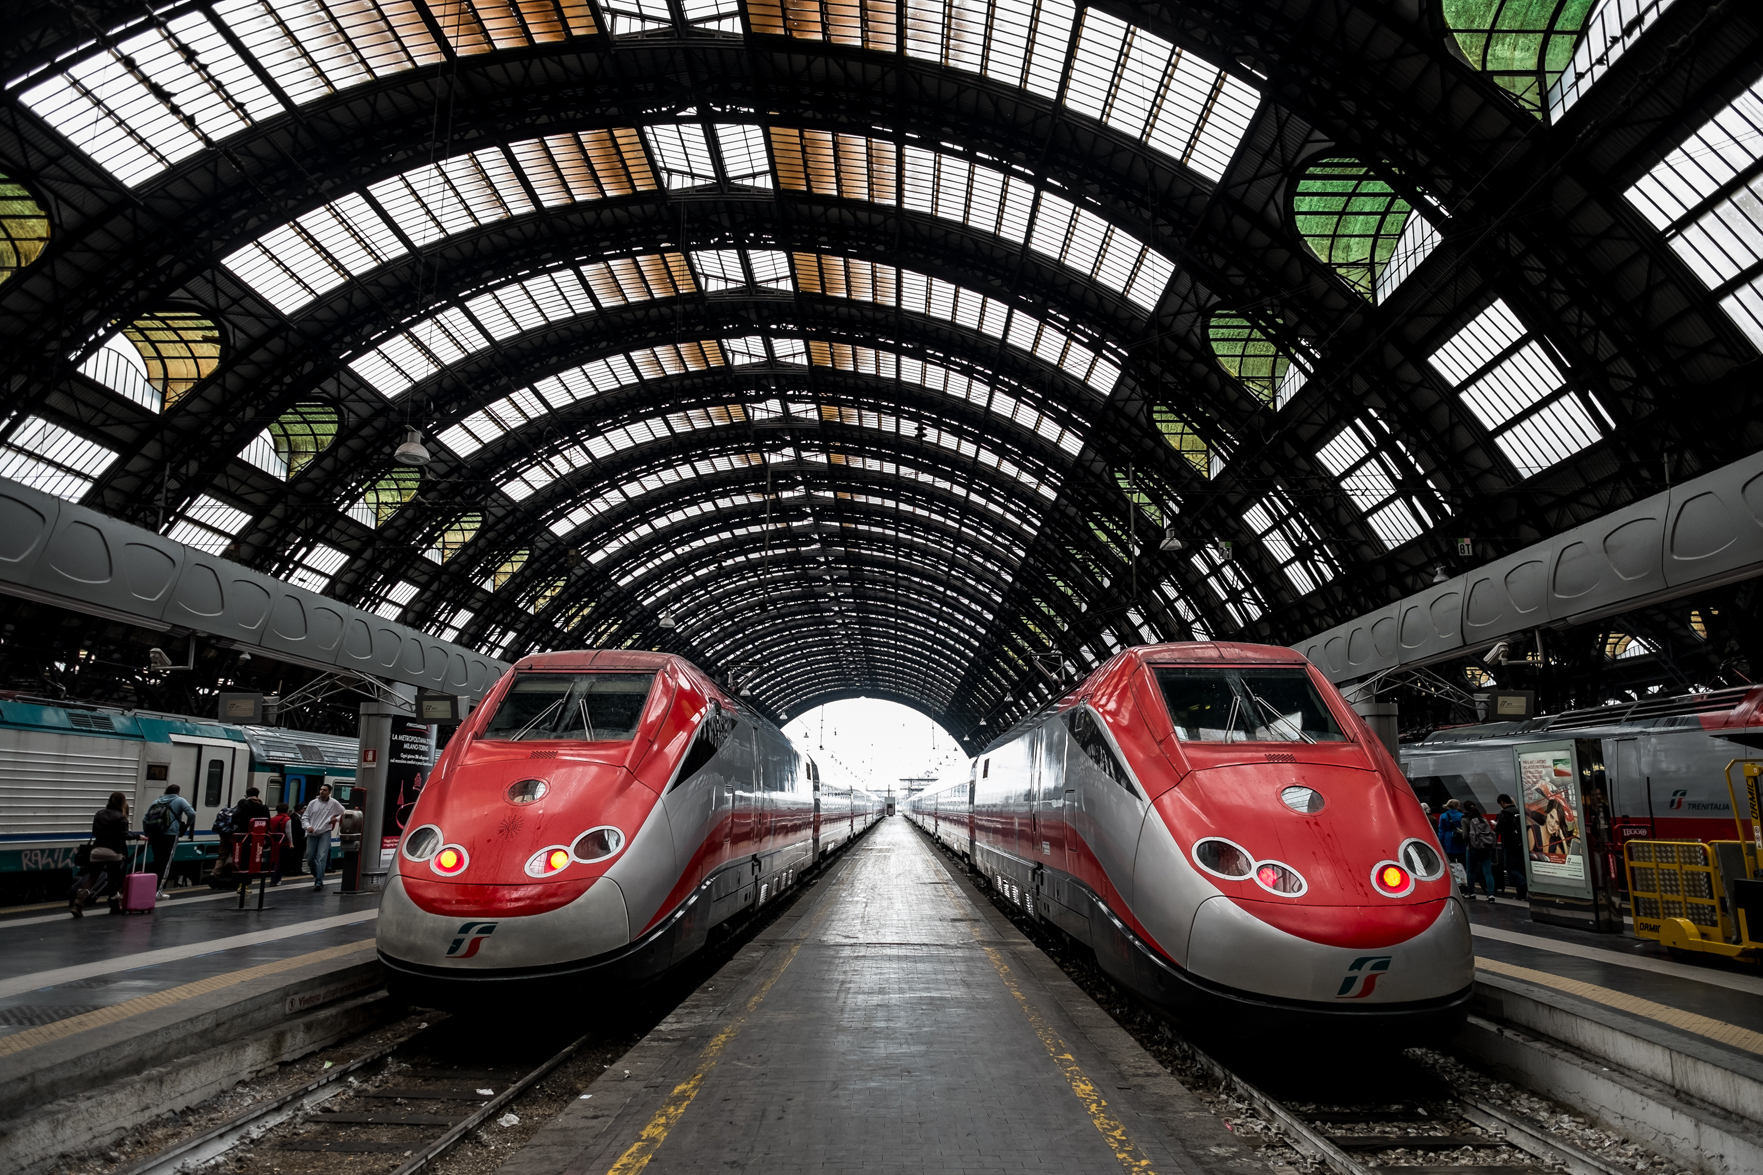 We arrived at Milano Centrale to make our way from Milan to Cinque Terre.